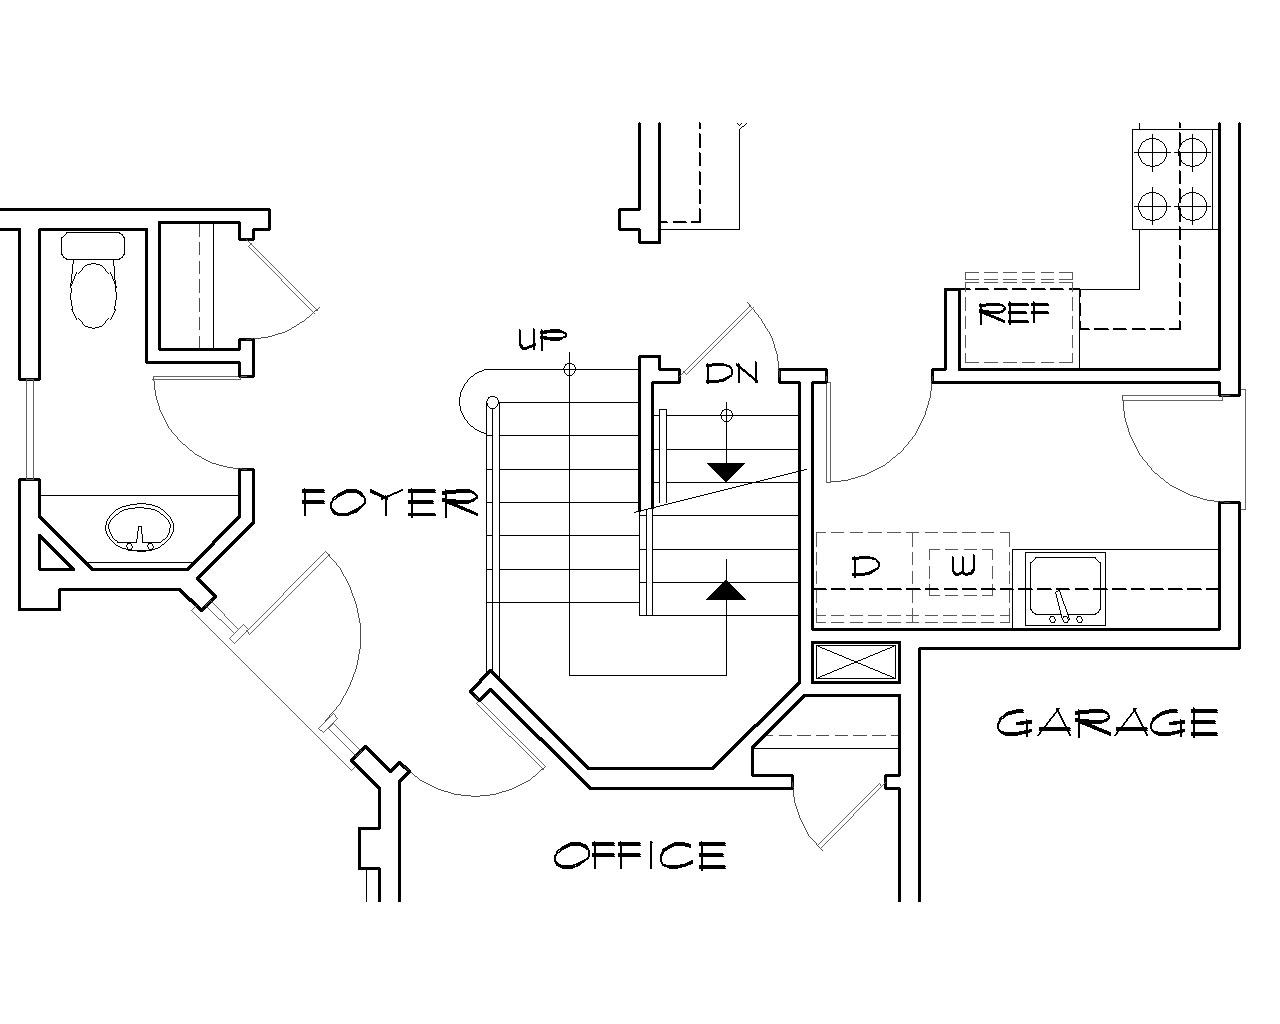 floor plans with basement stairs in middle submited images investment property in medellin blueprint investing